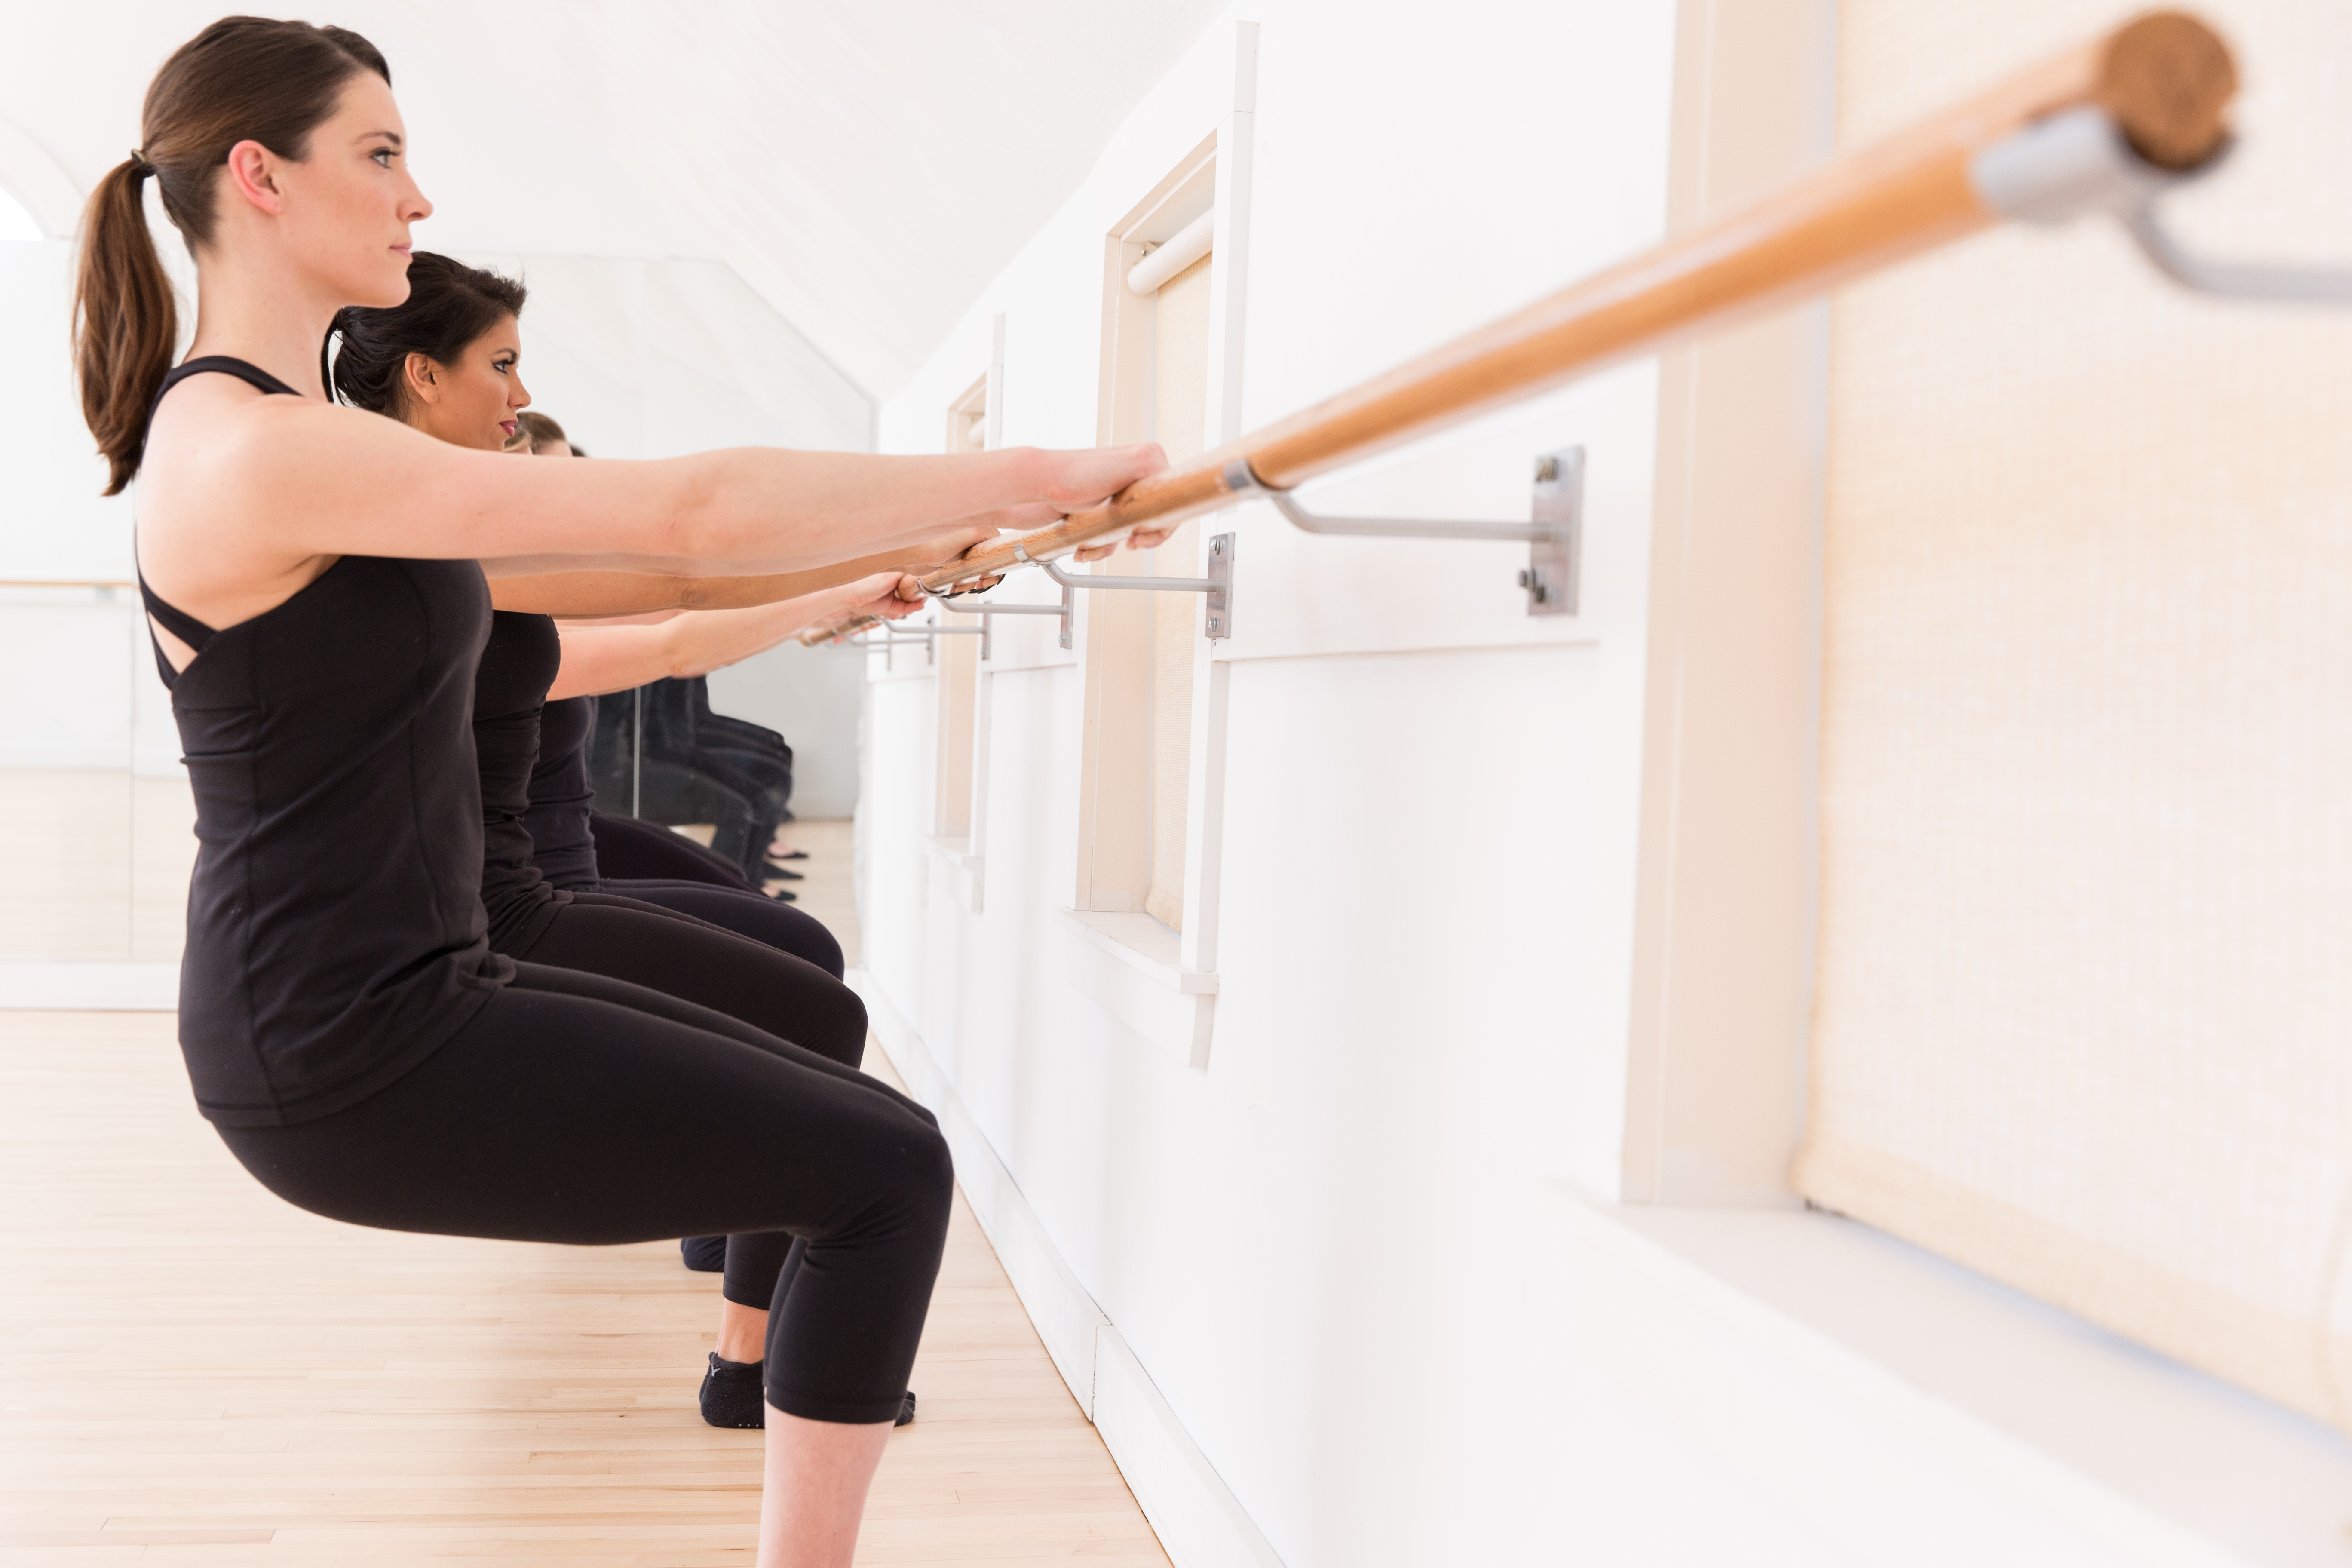 Barre-Based Indoor Exercises